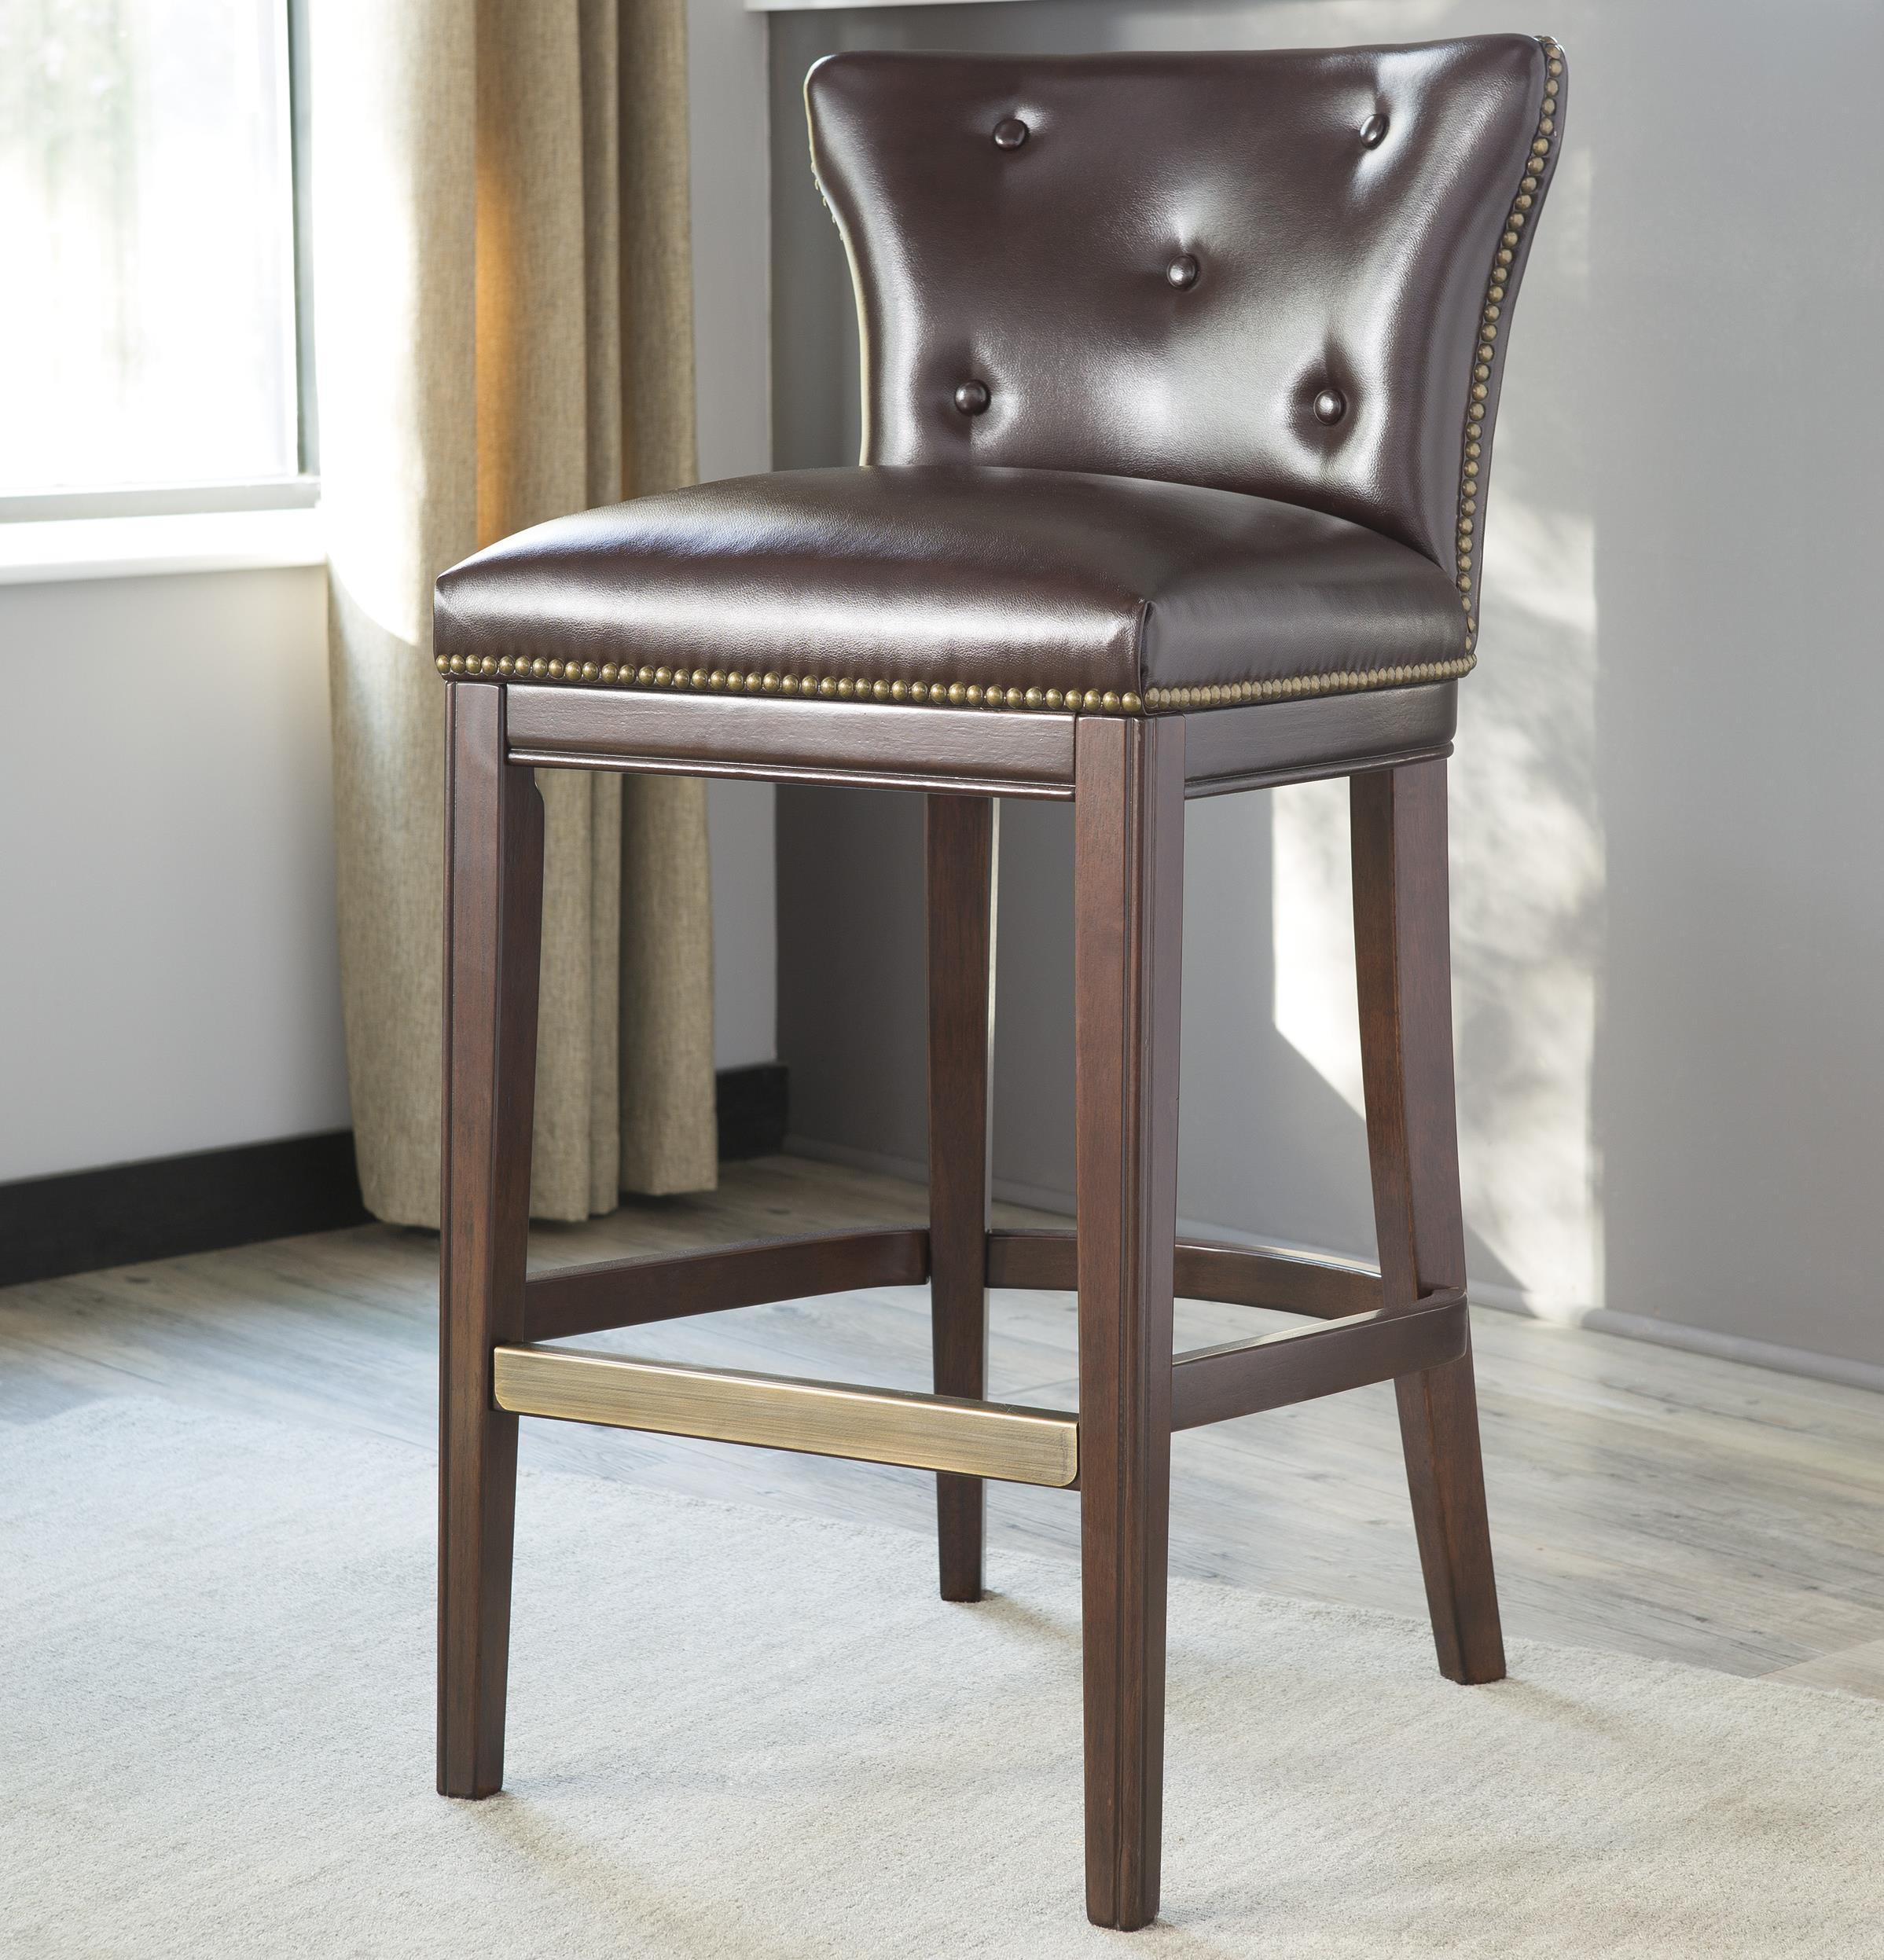 Signature Design by Ashley Canidelli Tall Upholstered Barstool - Item Number: D500-330